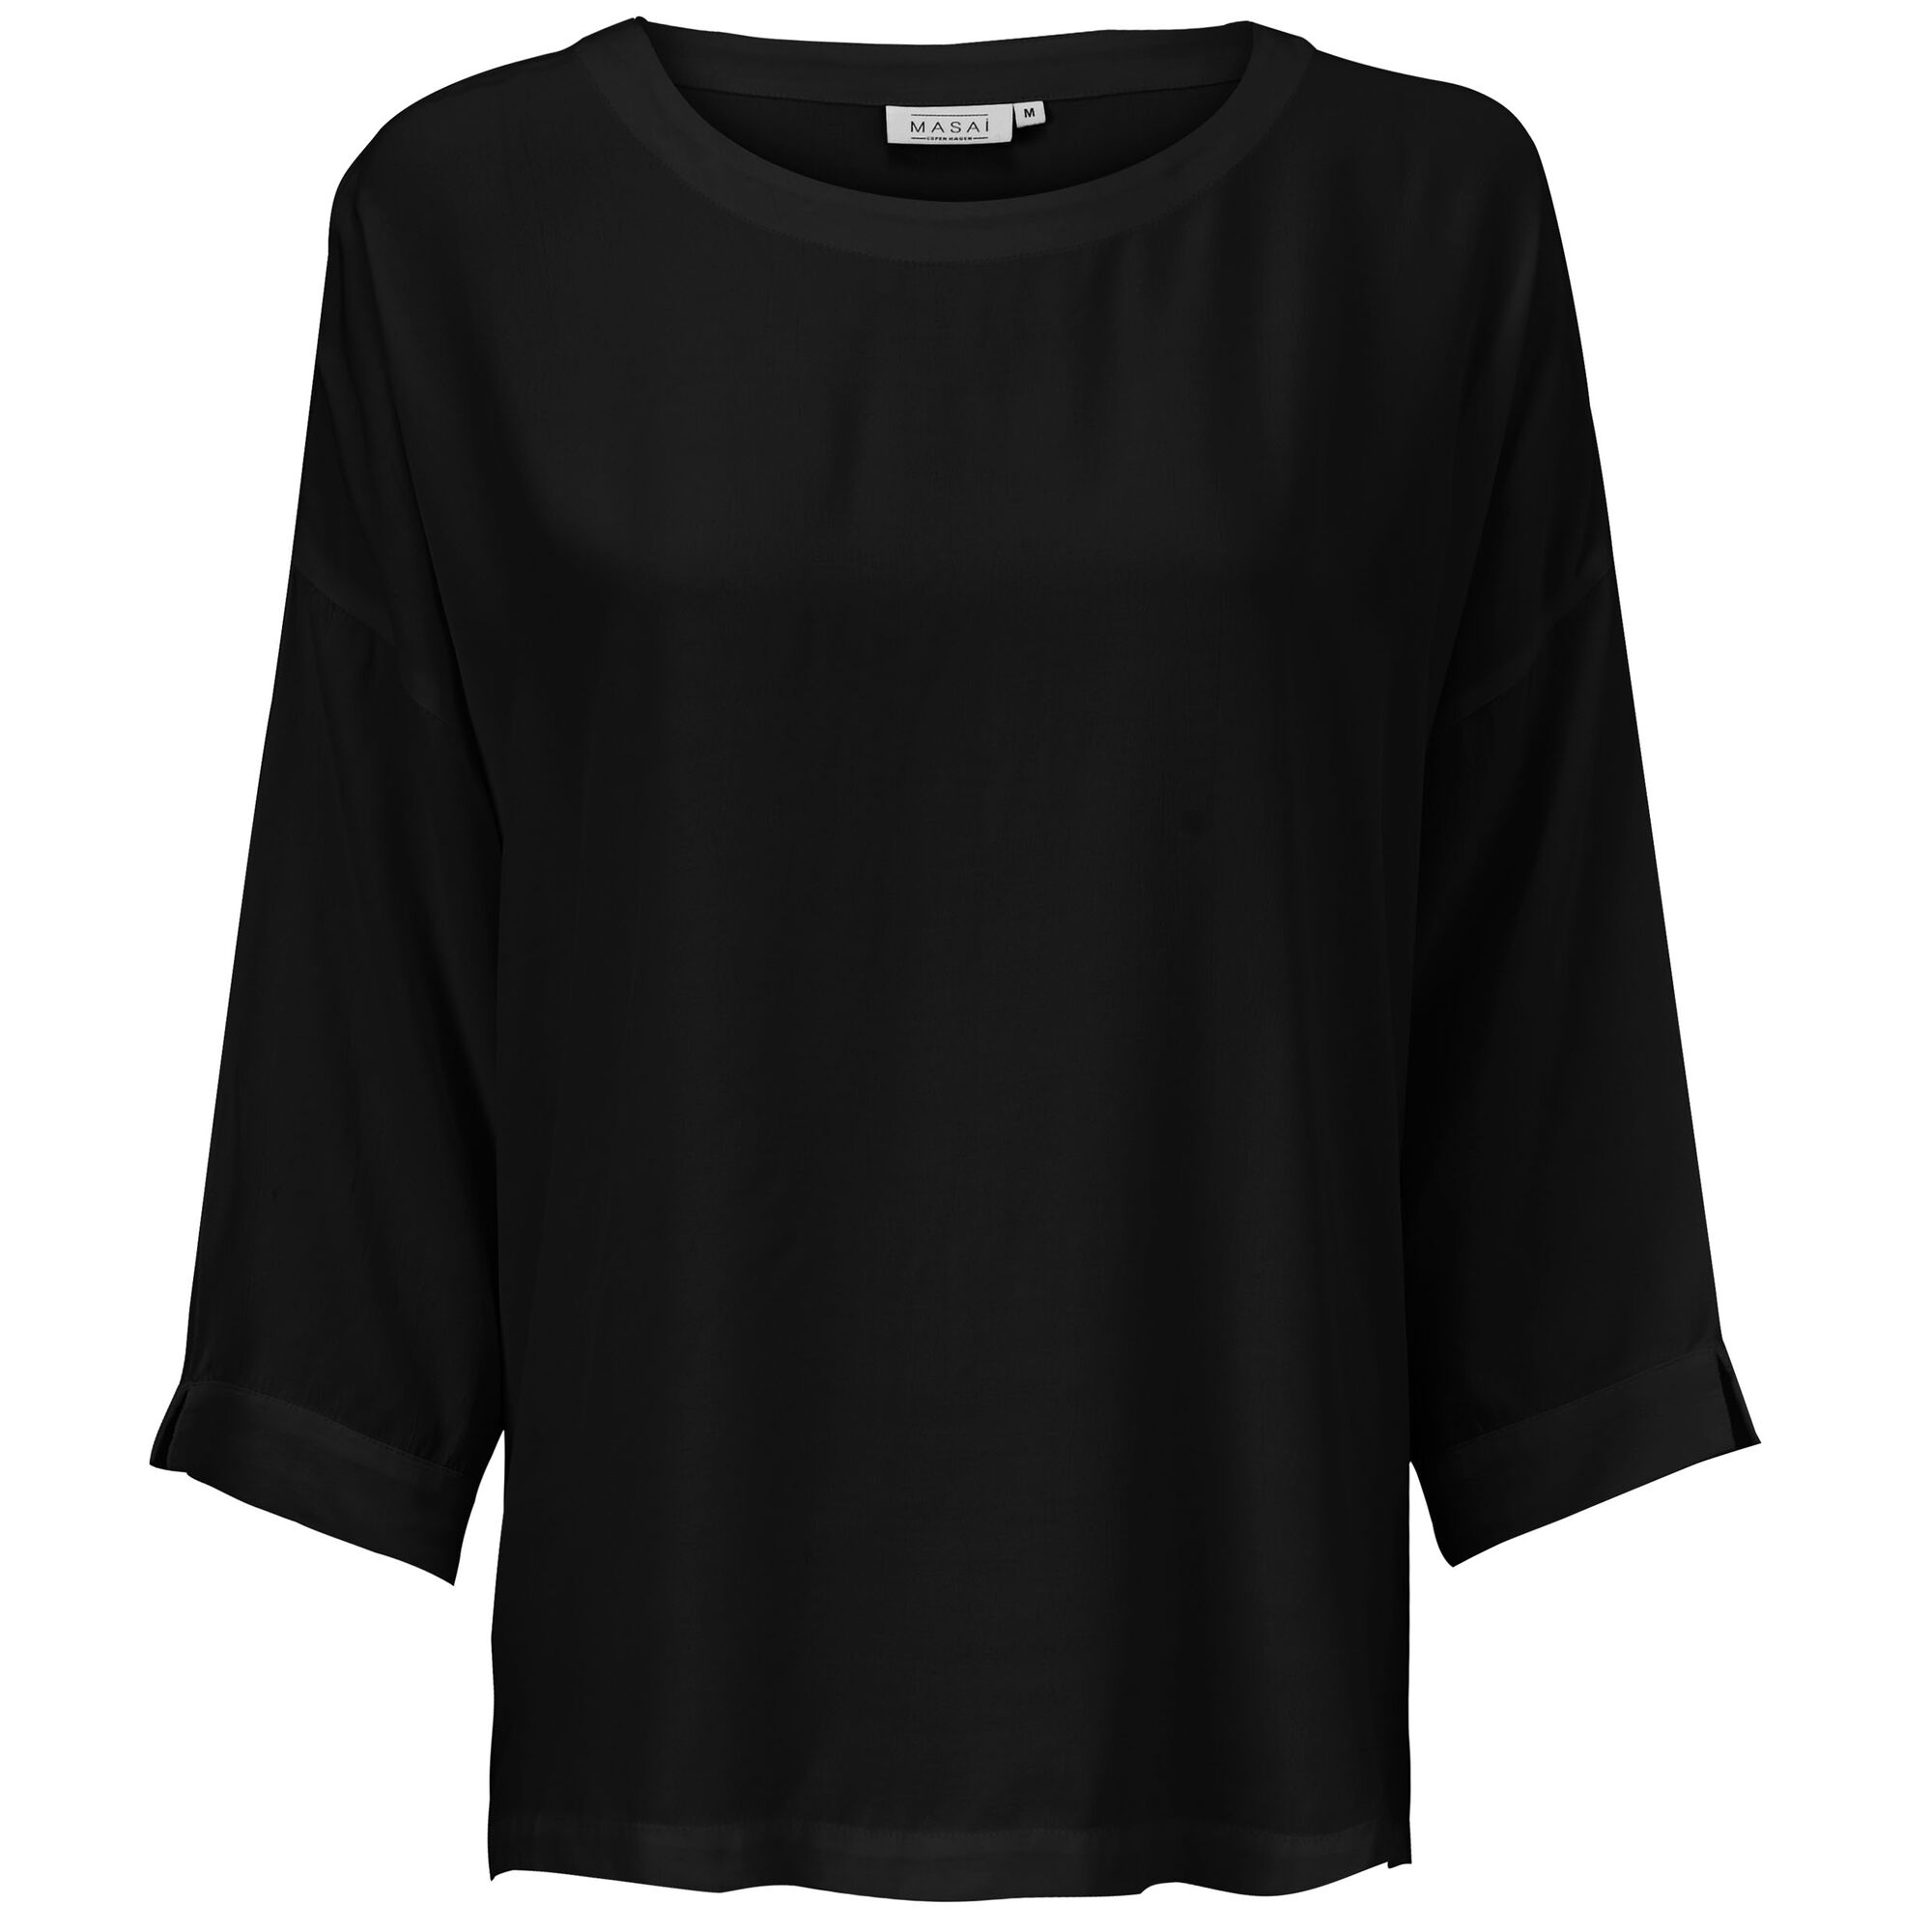 BECCA TOP, Black, hi-res